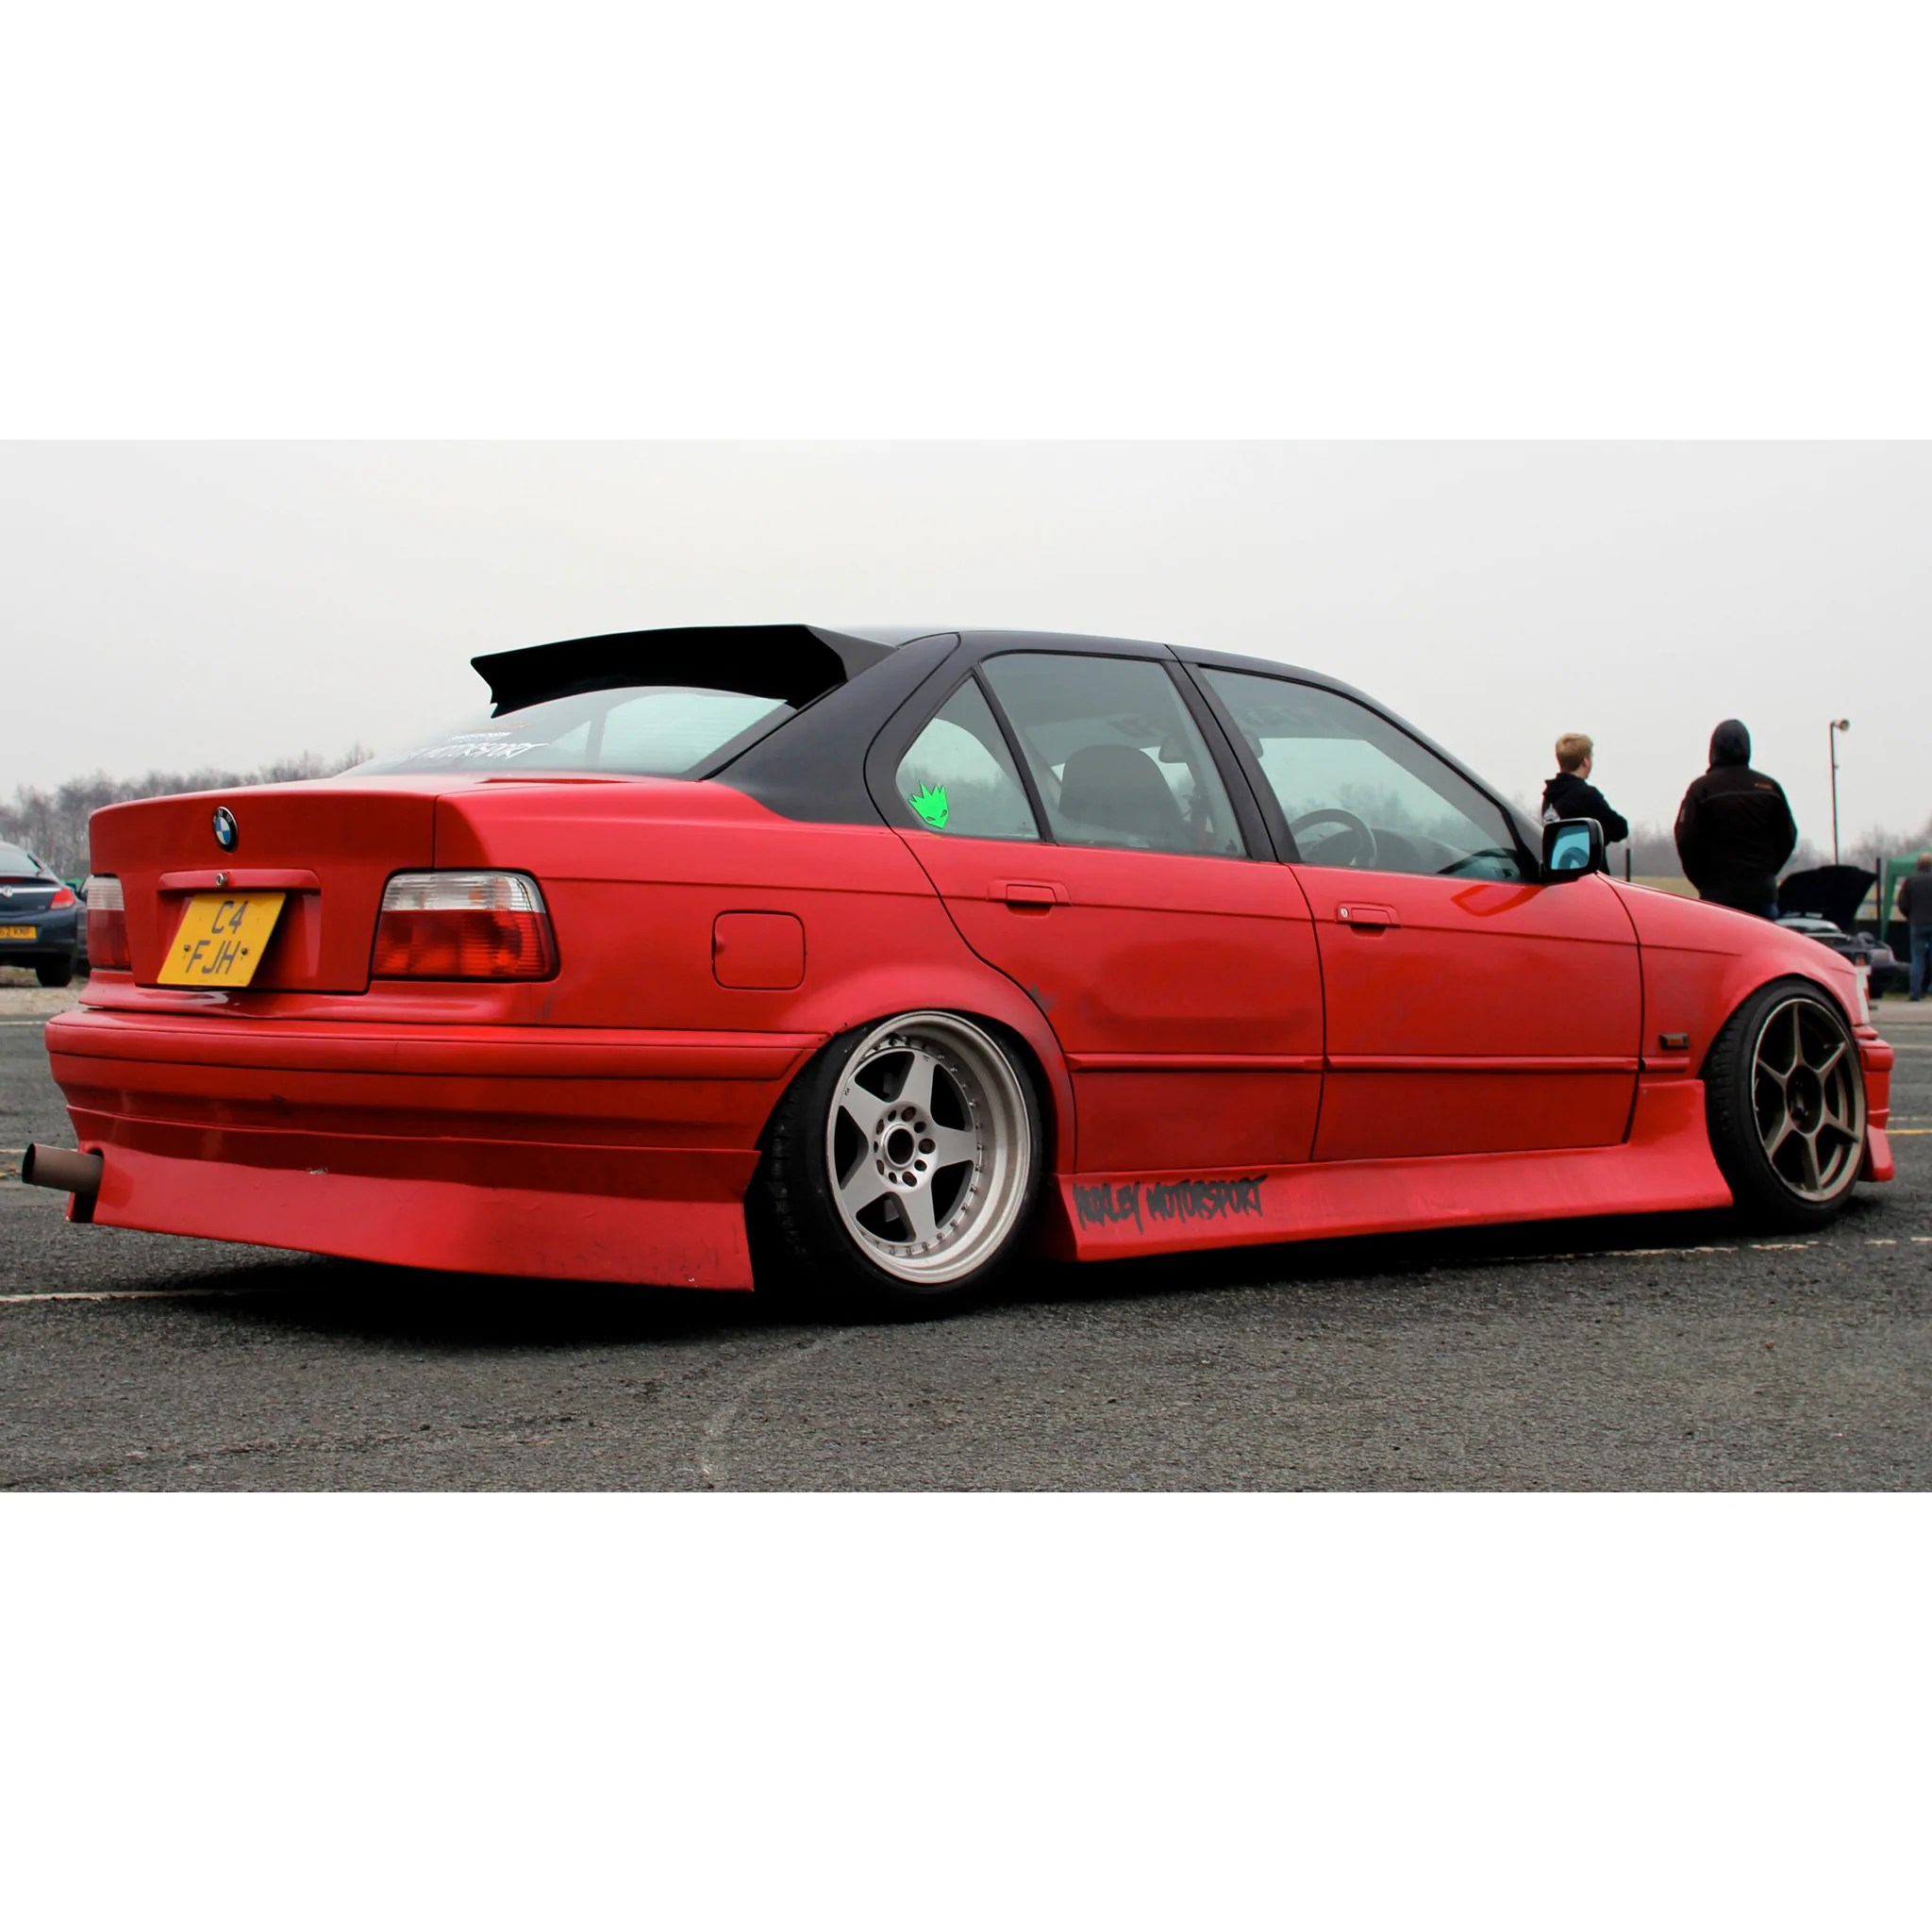 20+ E36 Aero Pictures and Ideas on Meta Networks